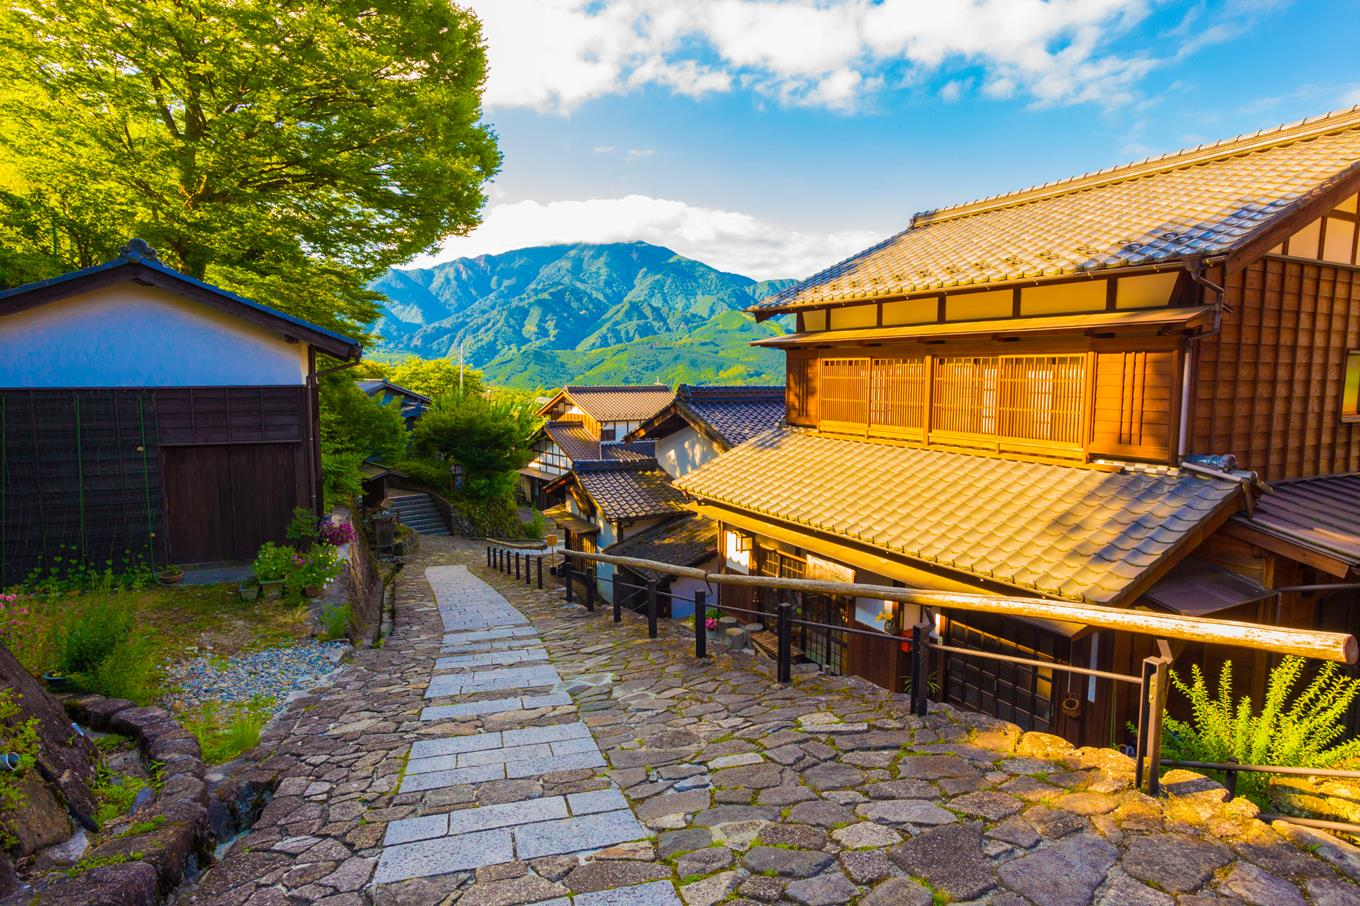 Join the Miles for Miracles trek—Japan 2019